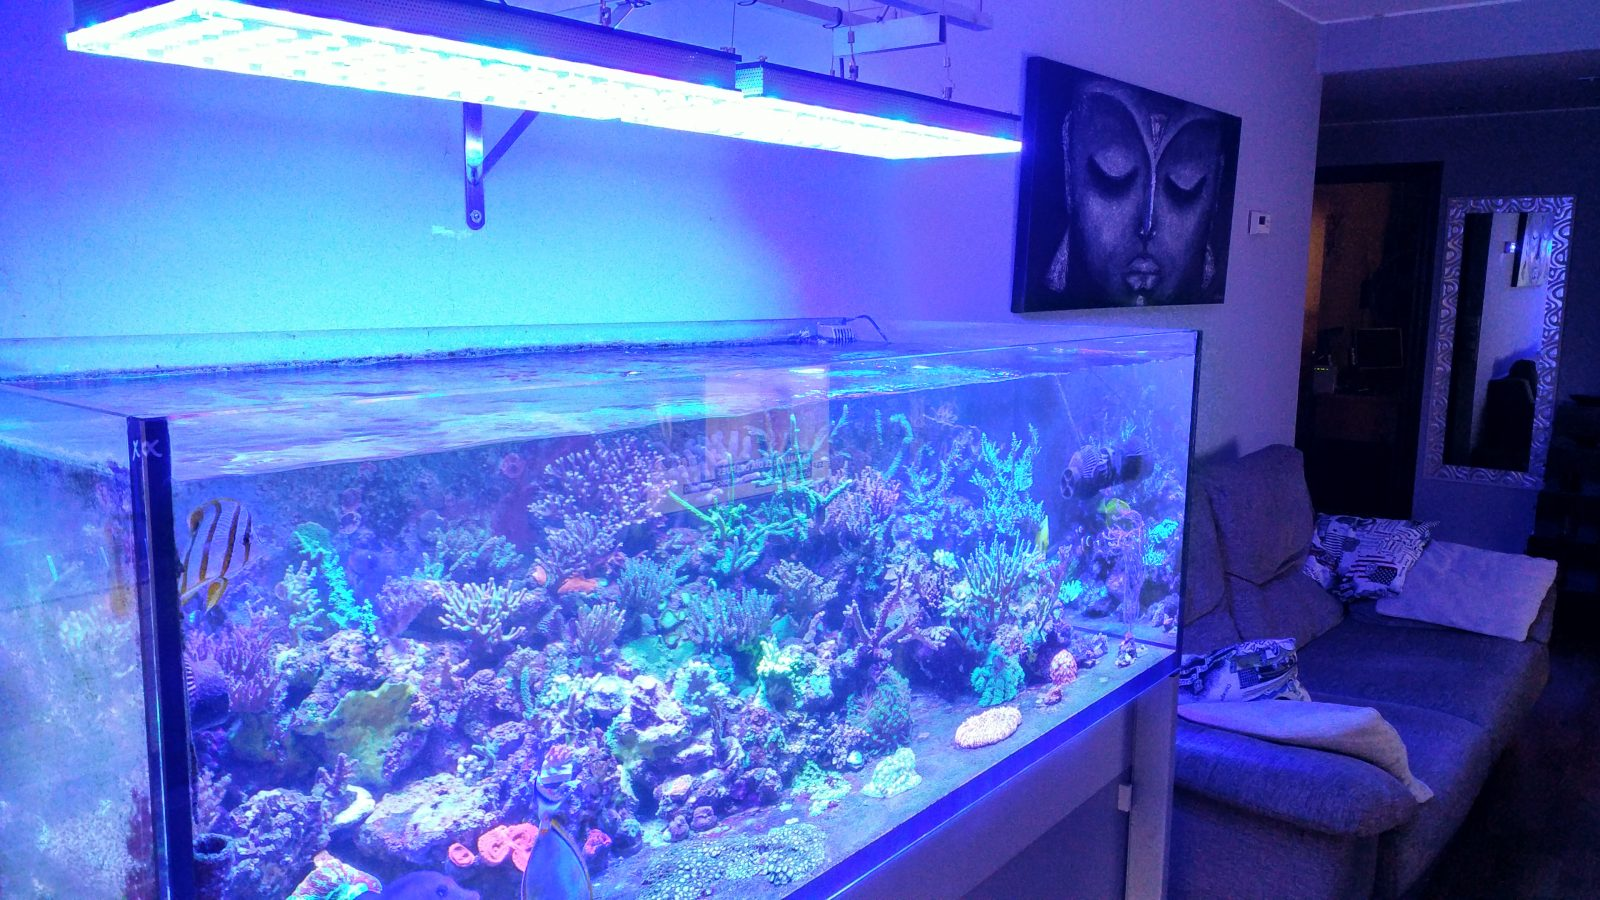 Best-aquarium-LED-ánh sáng-2017-Orphek